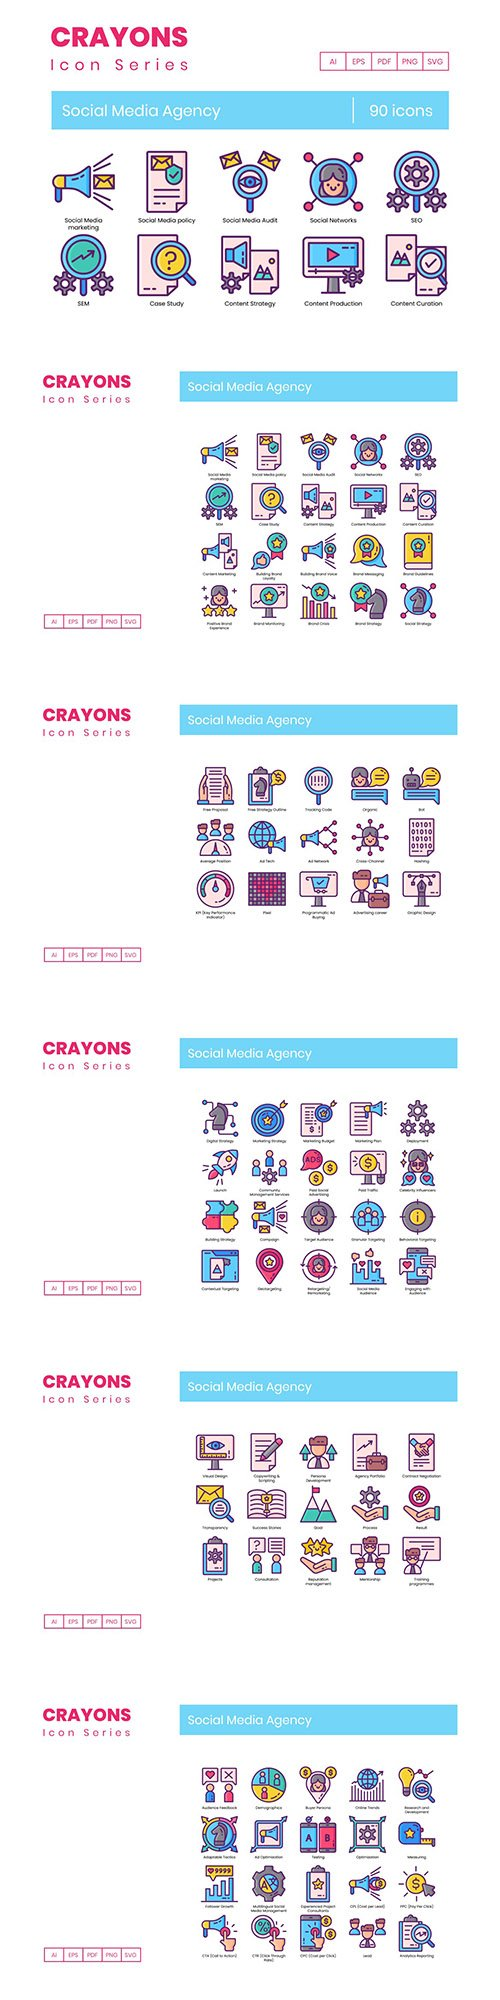 90 Social Media Agency Icons | Crayons Series